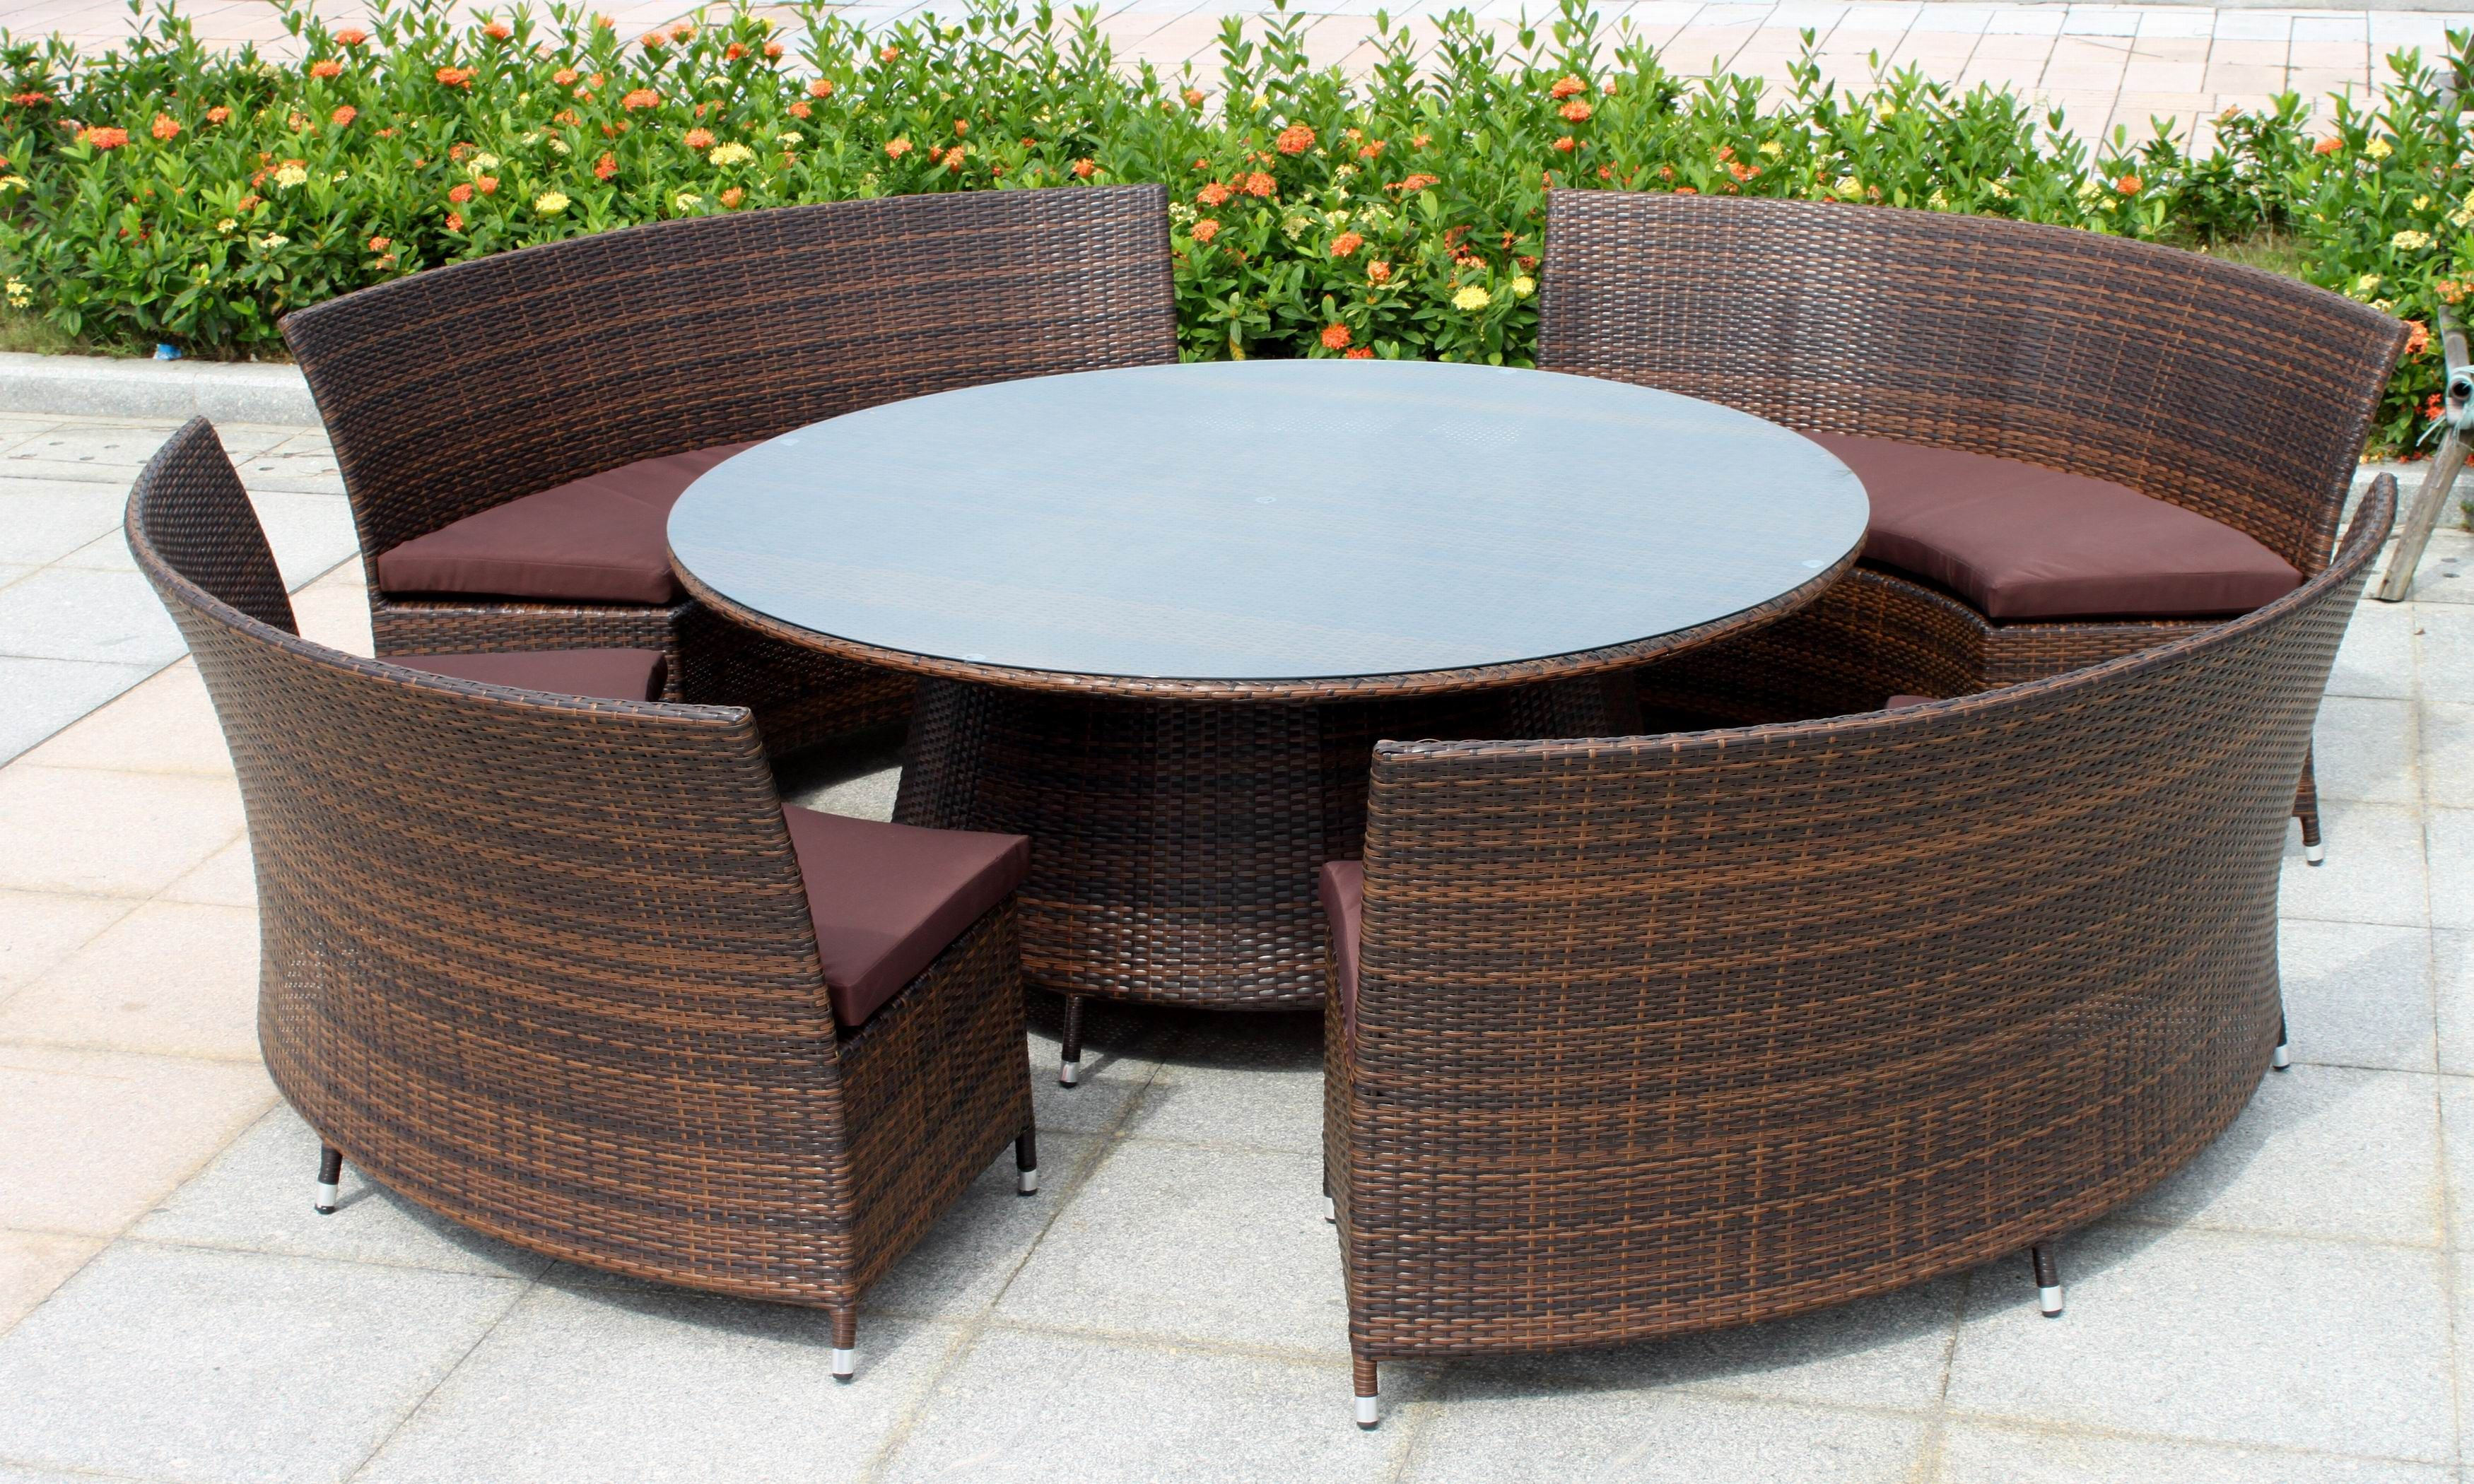 Common Uses Of Outdoor Wicker Furniture Discount Patio Furniture